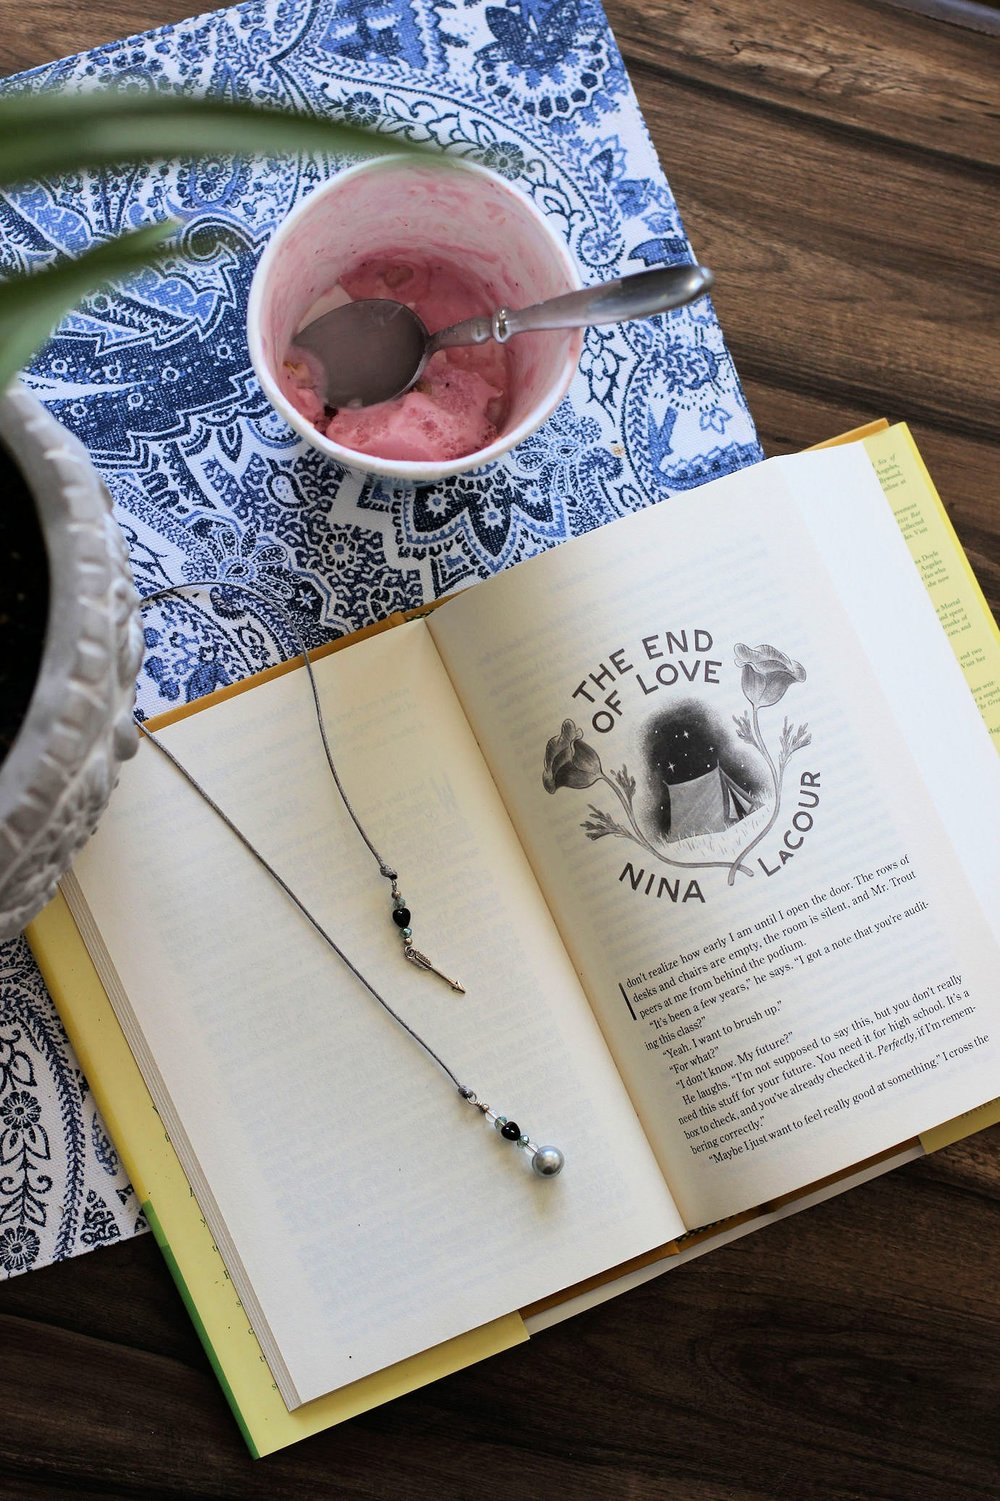 The End Of Love by Nina Lacour  - a video review  #bookbloggers #booklove #bookish #lbloggers